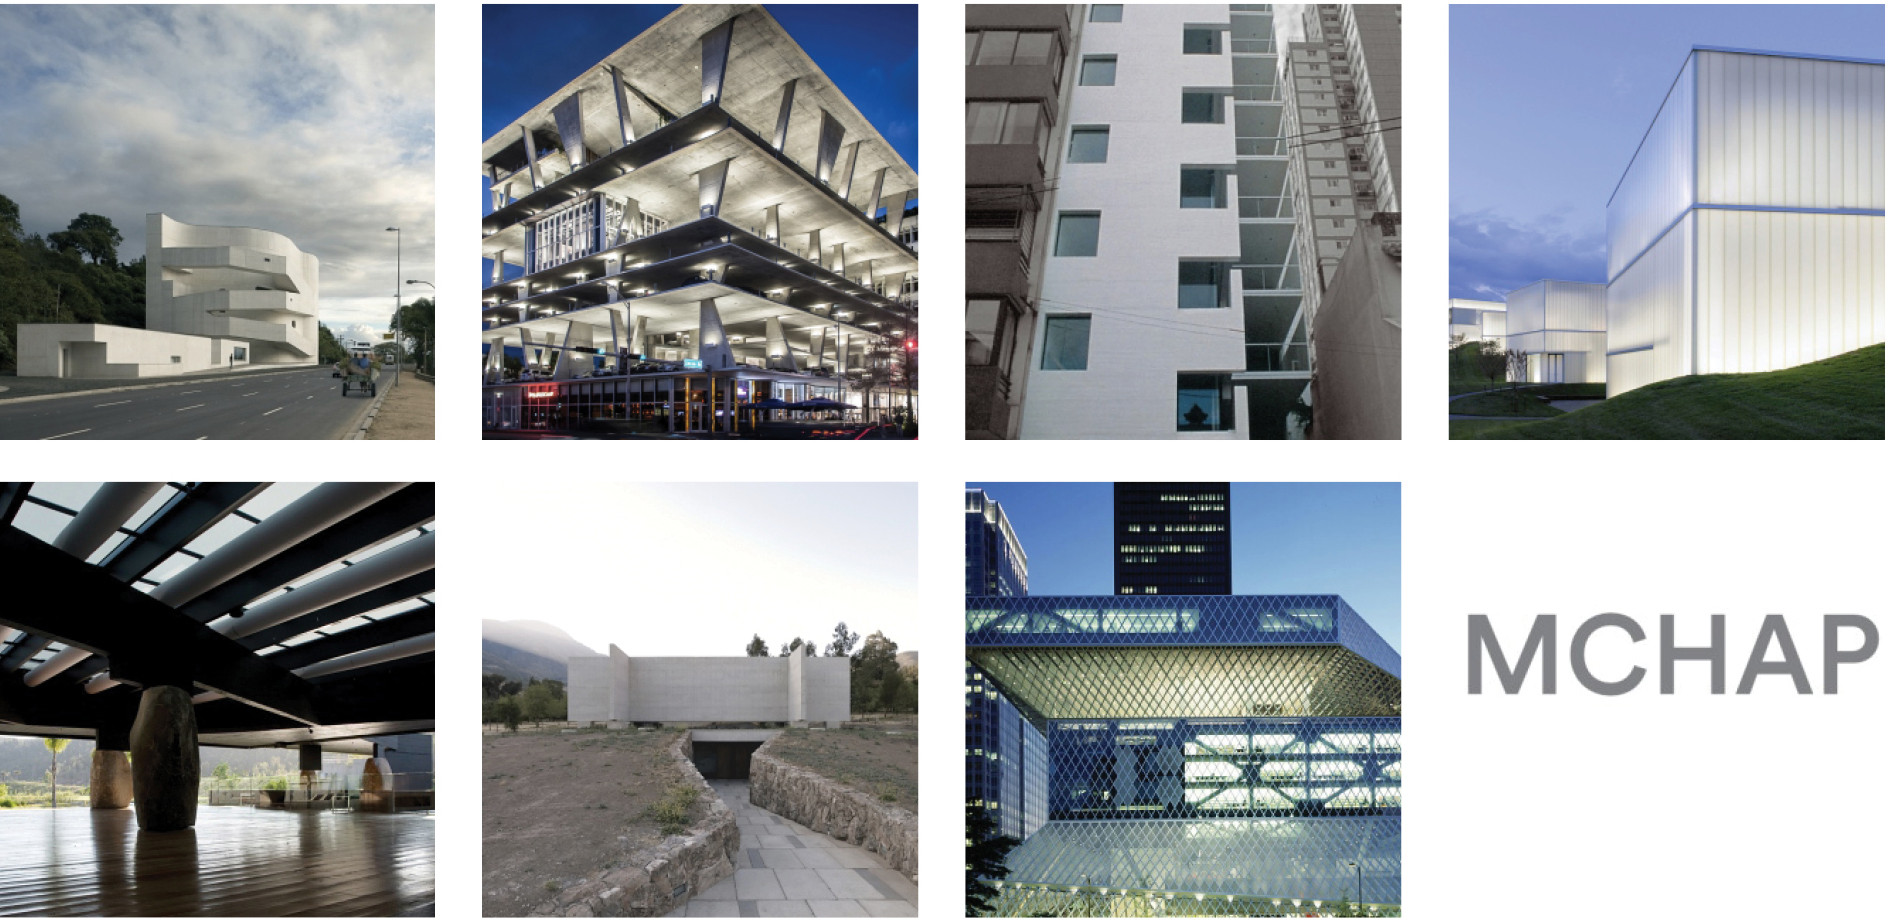 MCHAP Recognizes OMA, Holl, HdM as Finalists for Most Outstanding Projects in the Americas